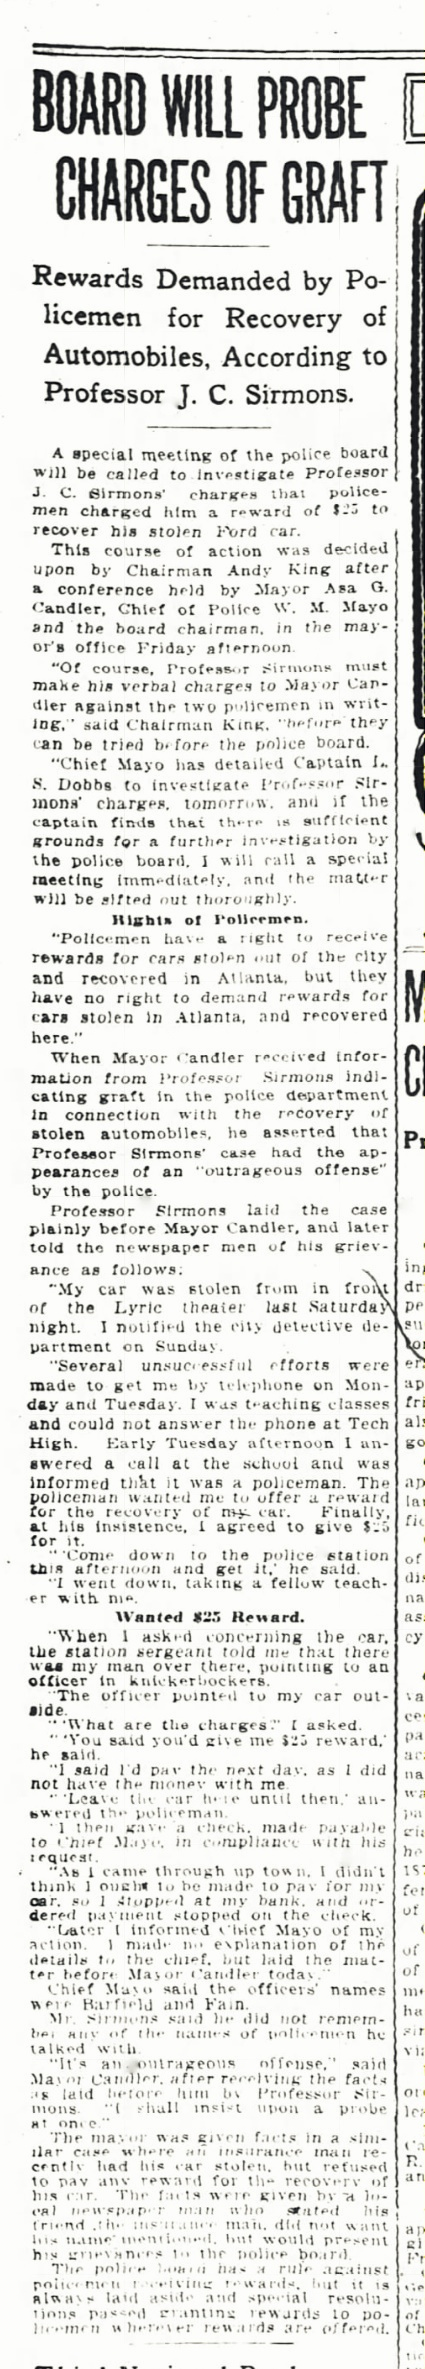 February 23, 1917 Atlanta Constitution reports charges of police graft brought by John C. Sirmons